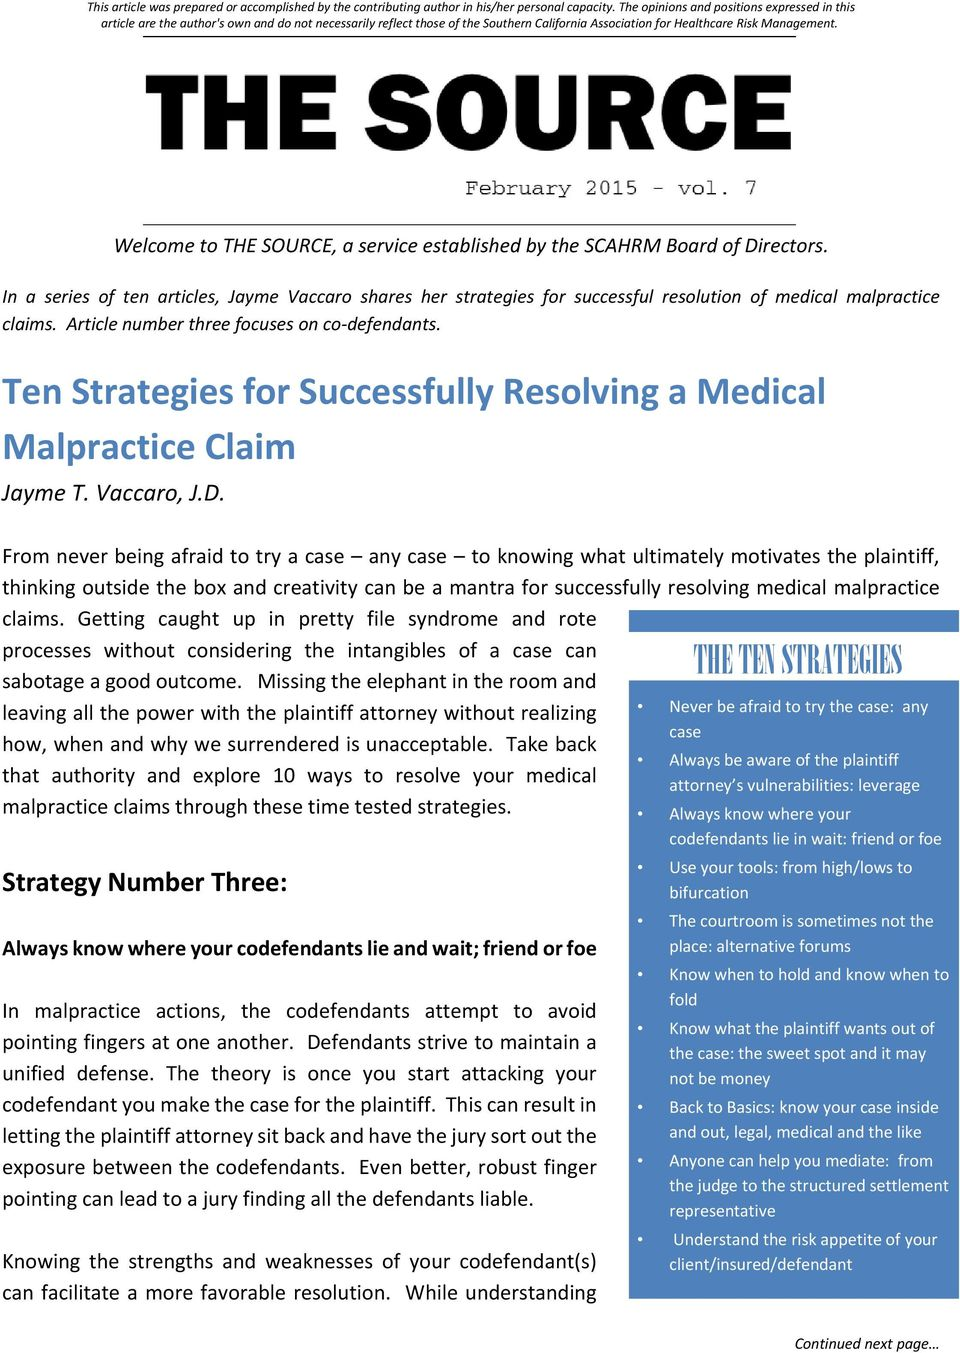 Welcome to THE SOURCE, a service established by the SCAHRM Board of Directors. In a series of ten articles, Jayme Vaccaro shares her strategies for successful resolution of medical malpractice claims.